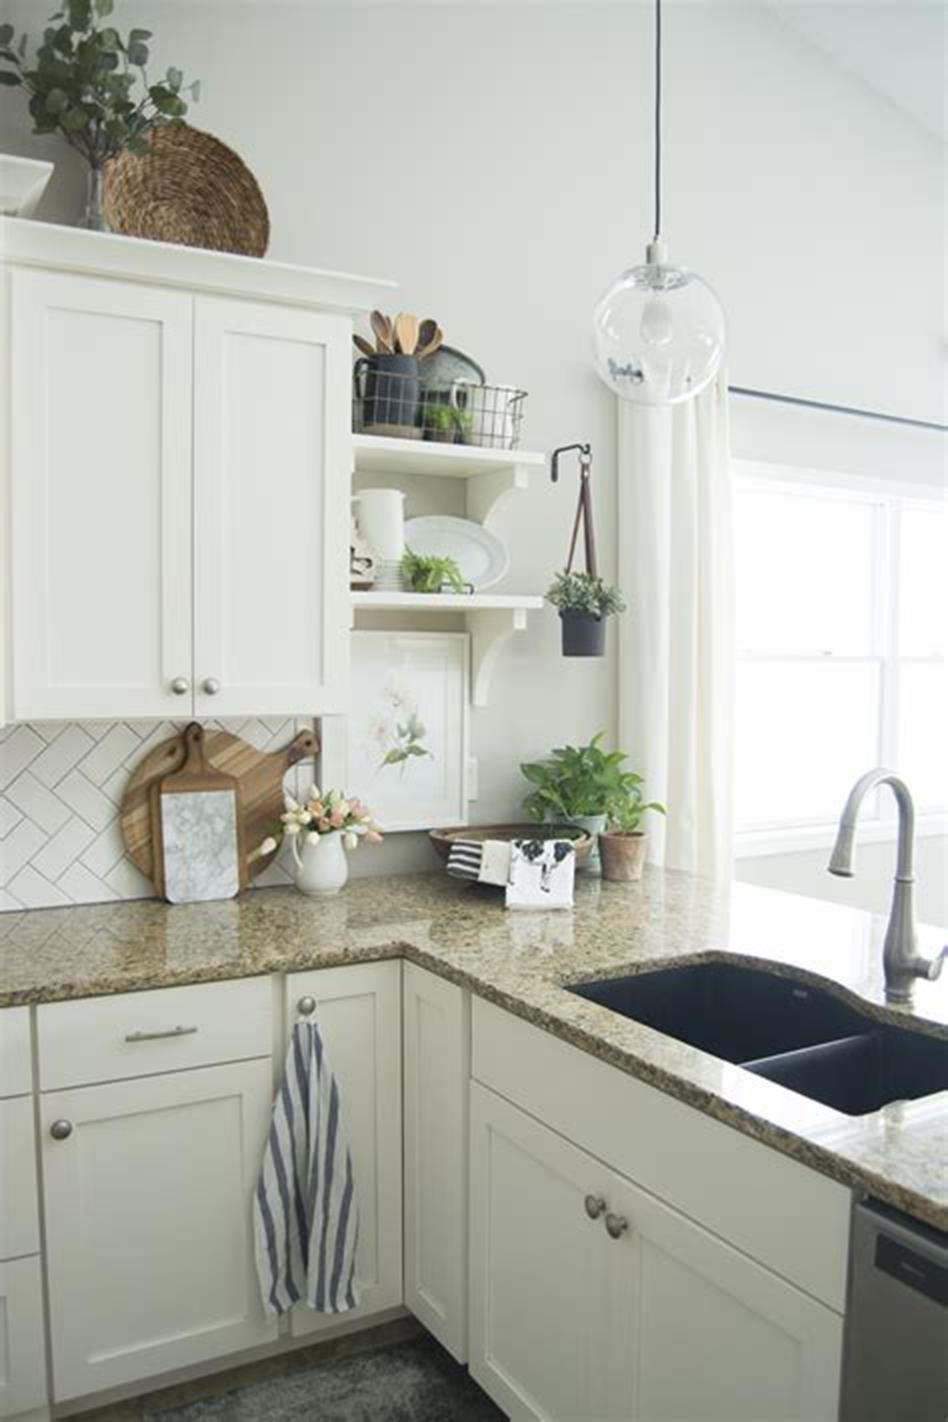 35 Stunning Spring Kitchen and Dining Room Decorating Ideas 2019 68